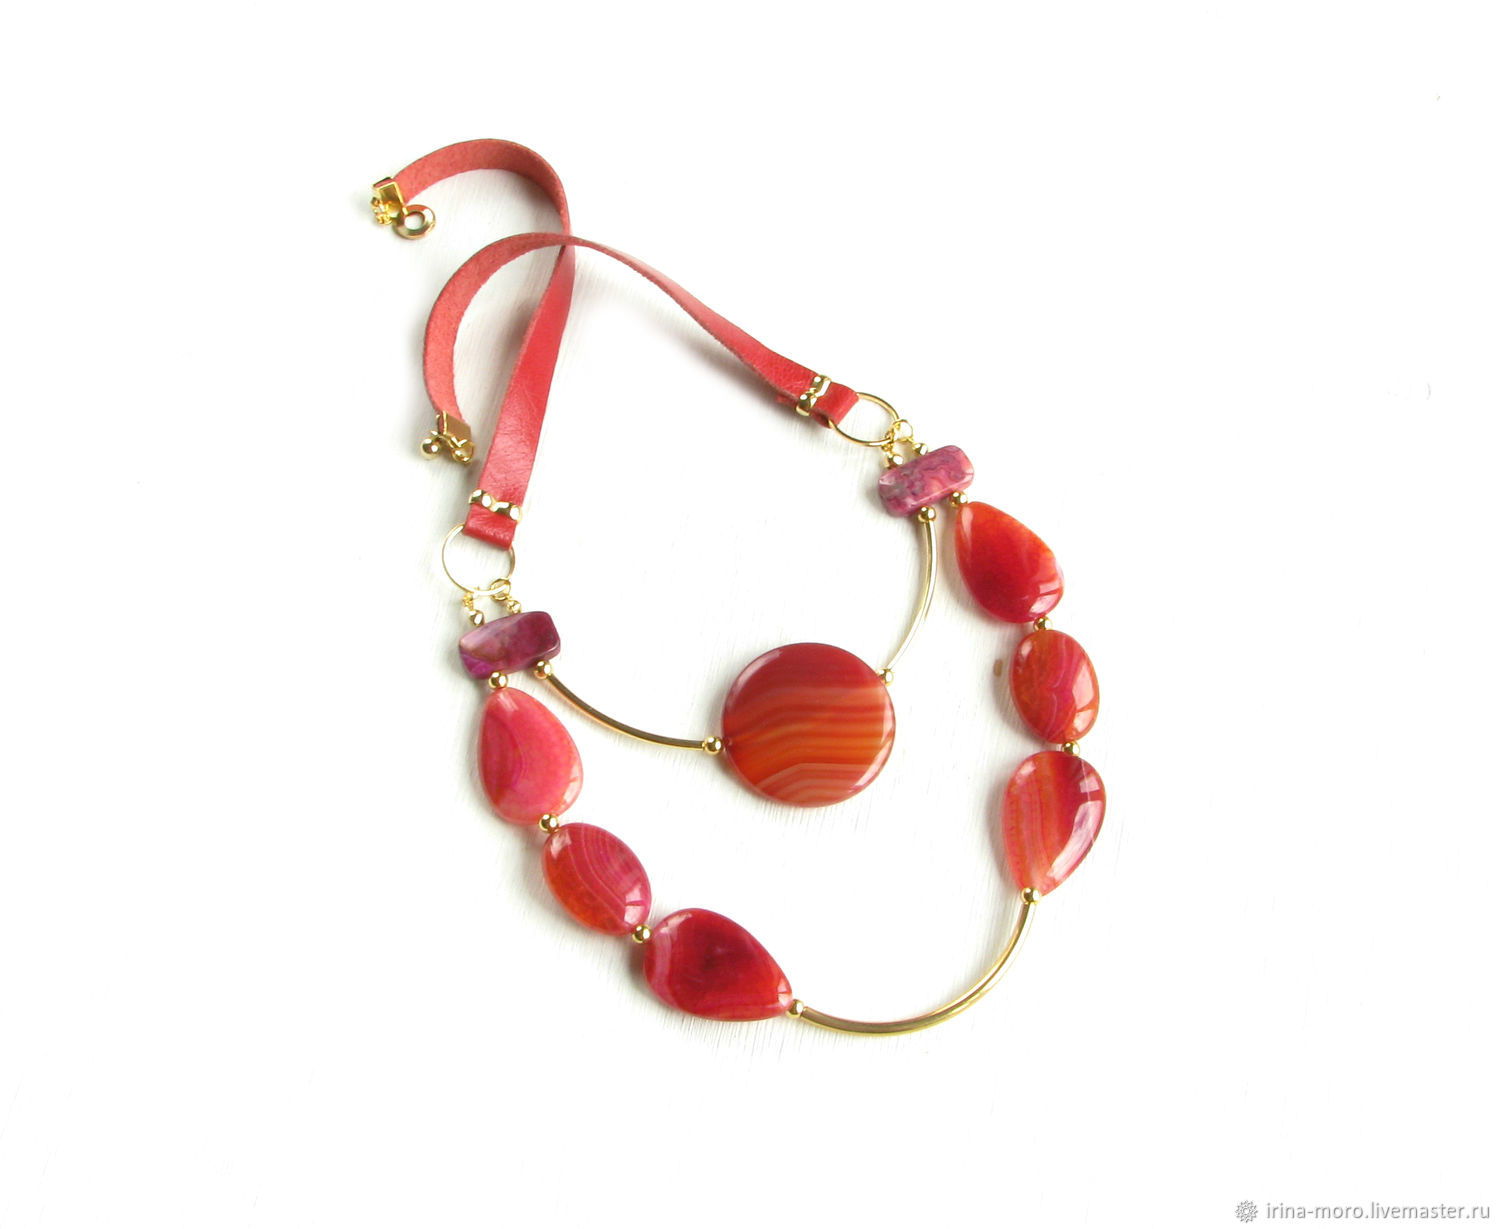 Red necklace with agates 'Autumn contrasts' agate decoration, Necklace, Moscow,  Фото №1